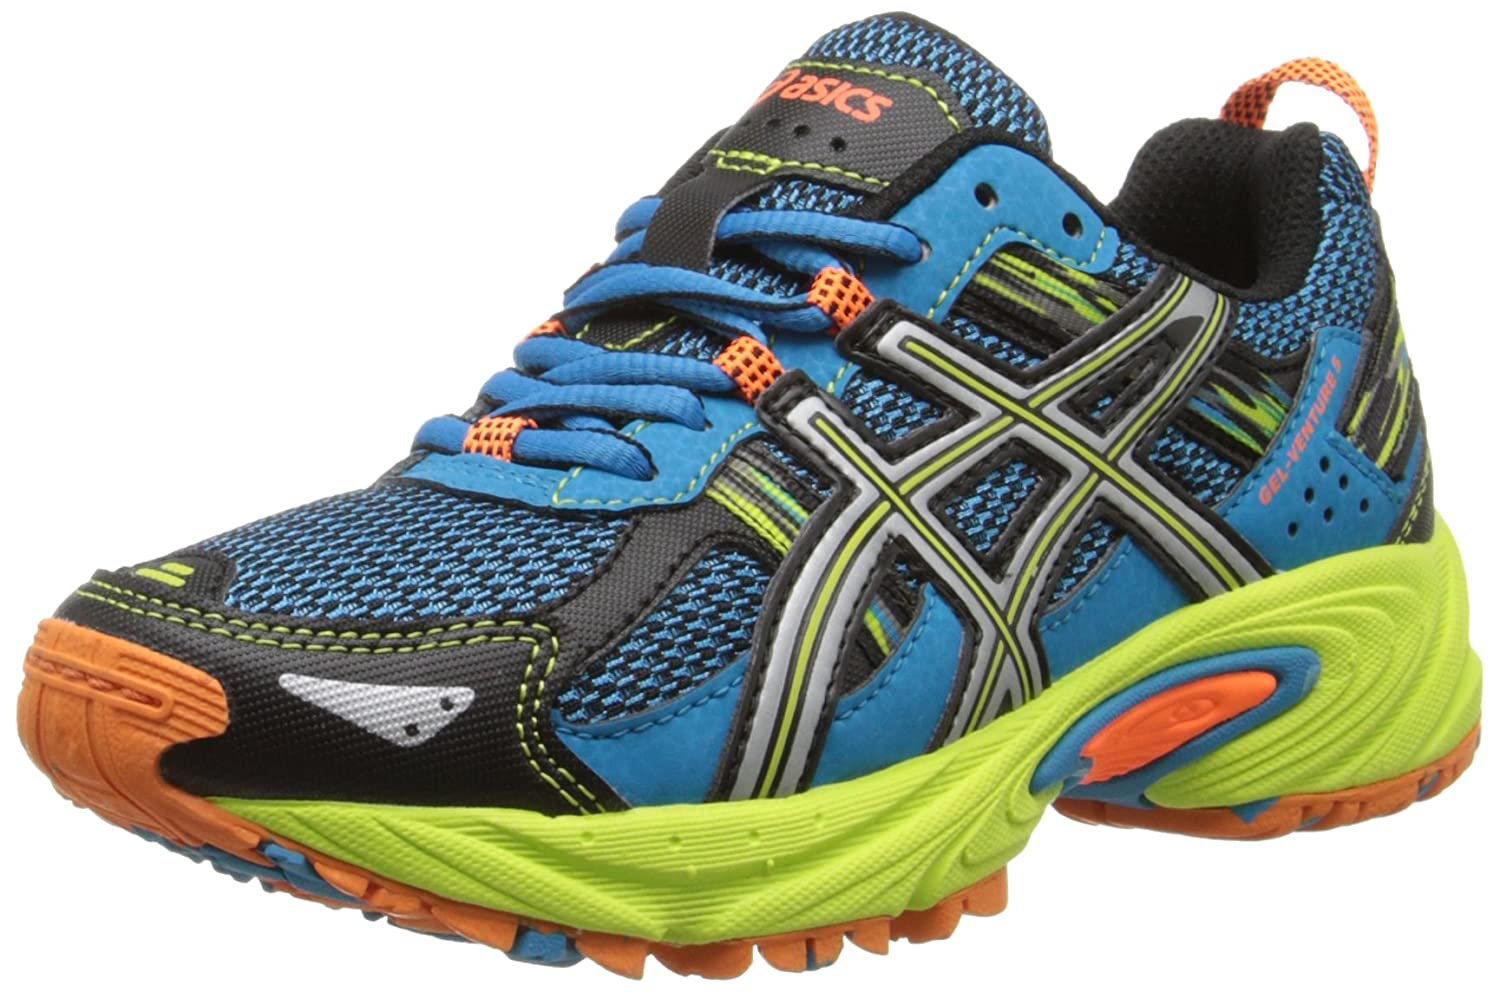 ASICS Gel Venture 5 GS Trail Running Shoe (Little Kid/Big Kid) кроссовки asics кроссовки gel venture 6 gs